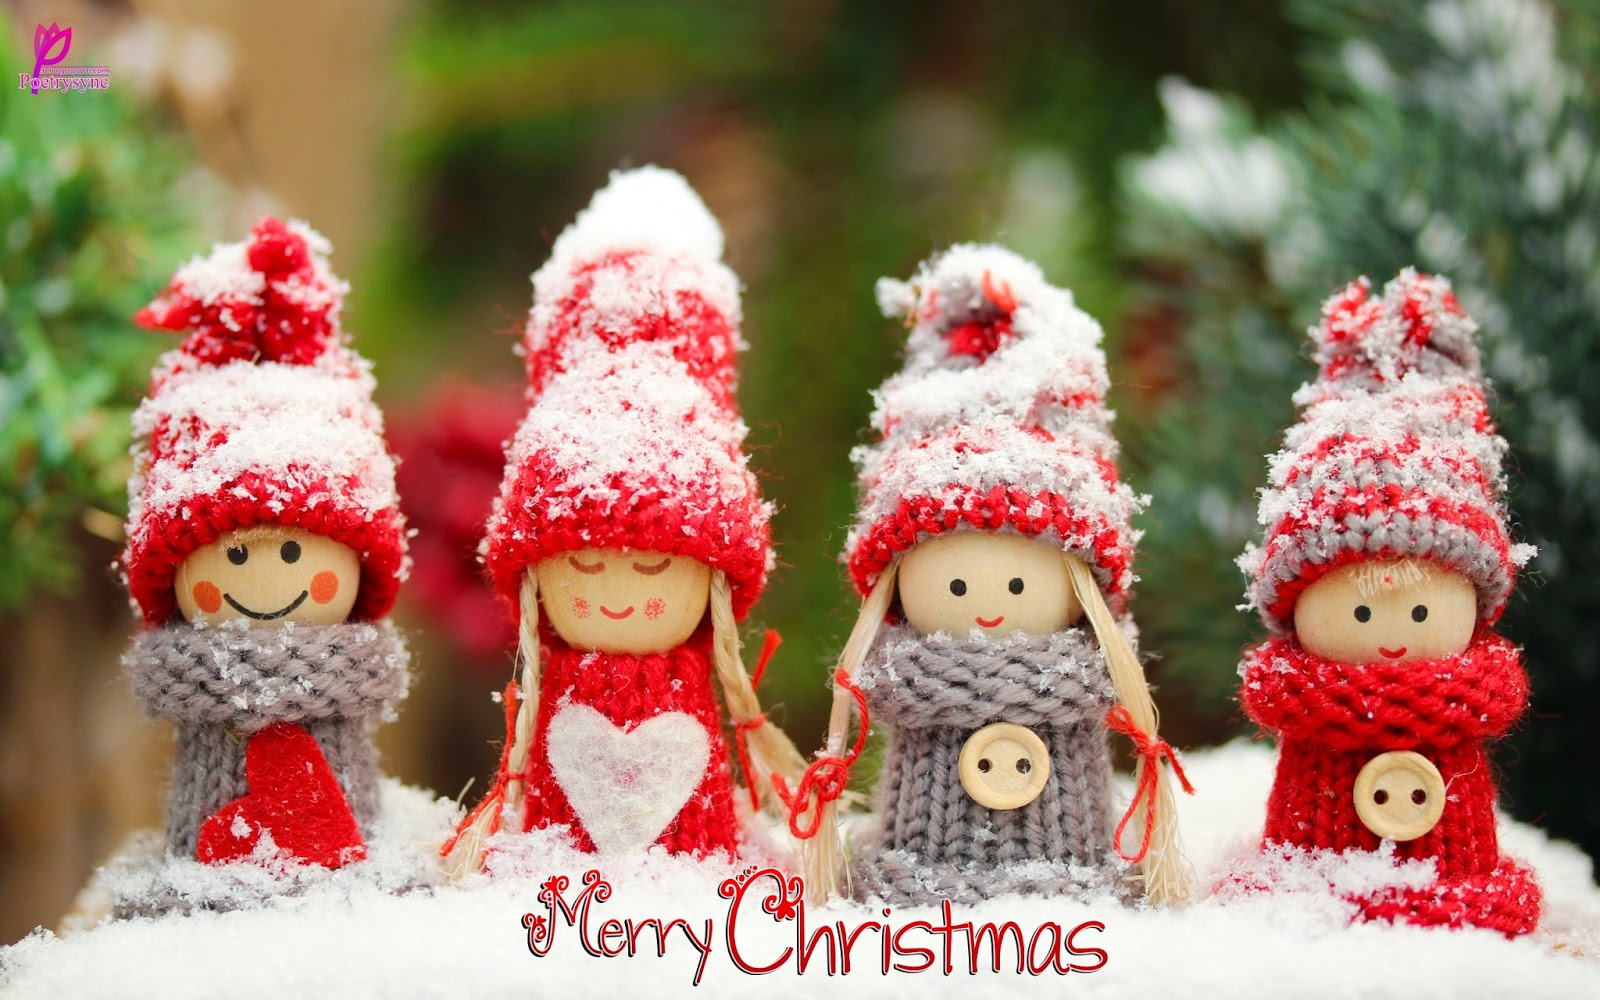 Cute Christmas Wallpaper - WallpaperSafari